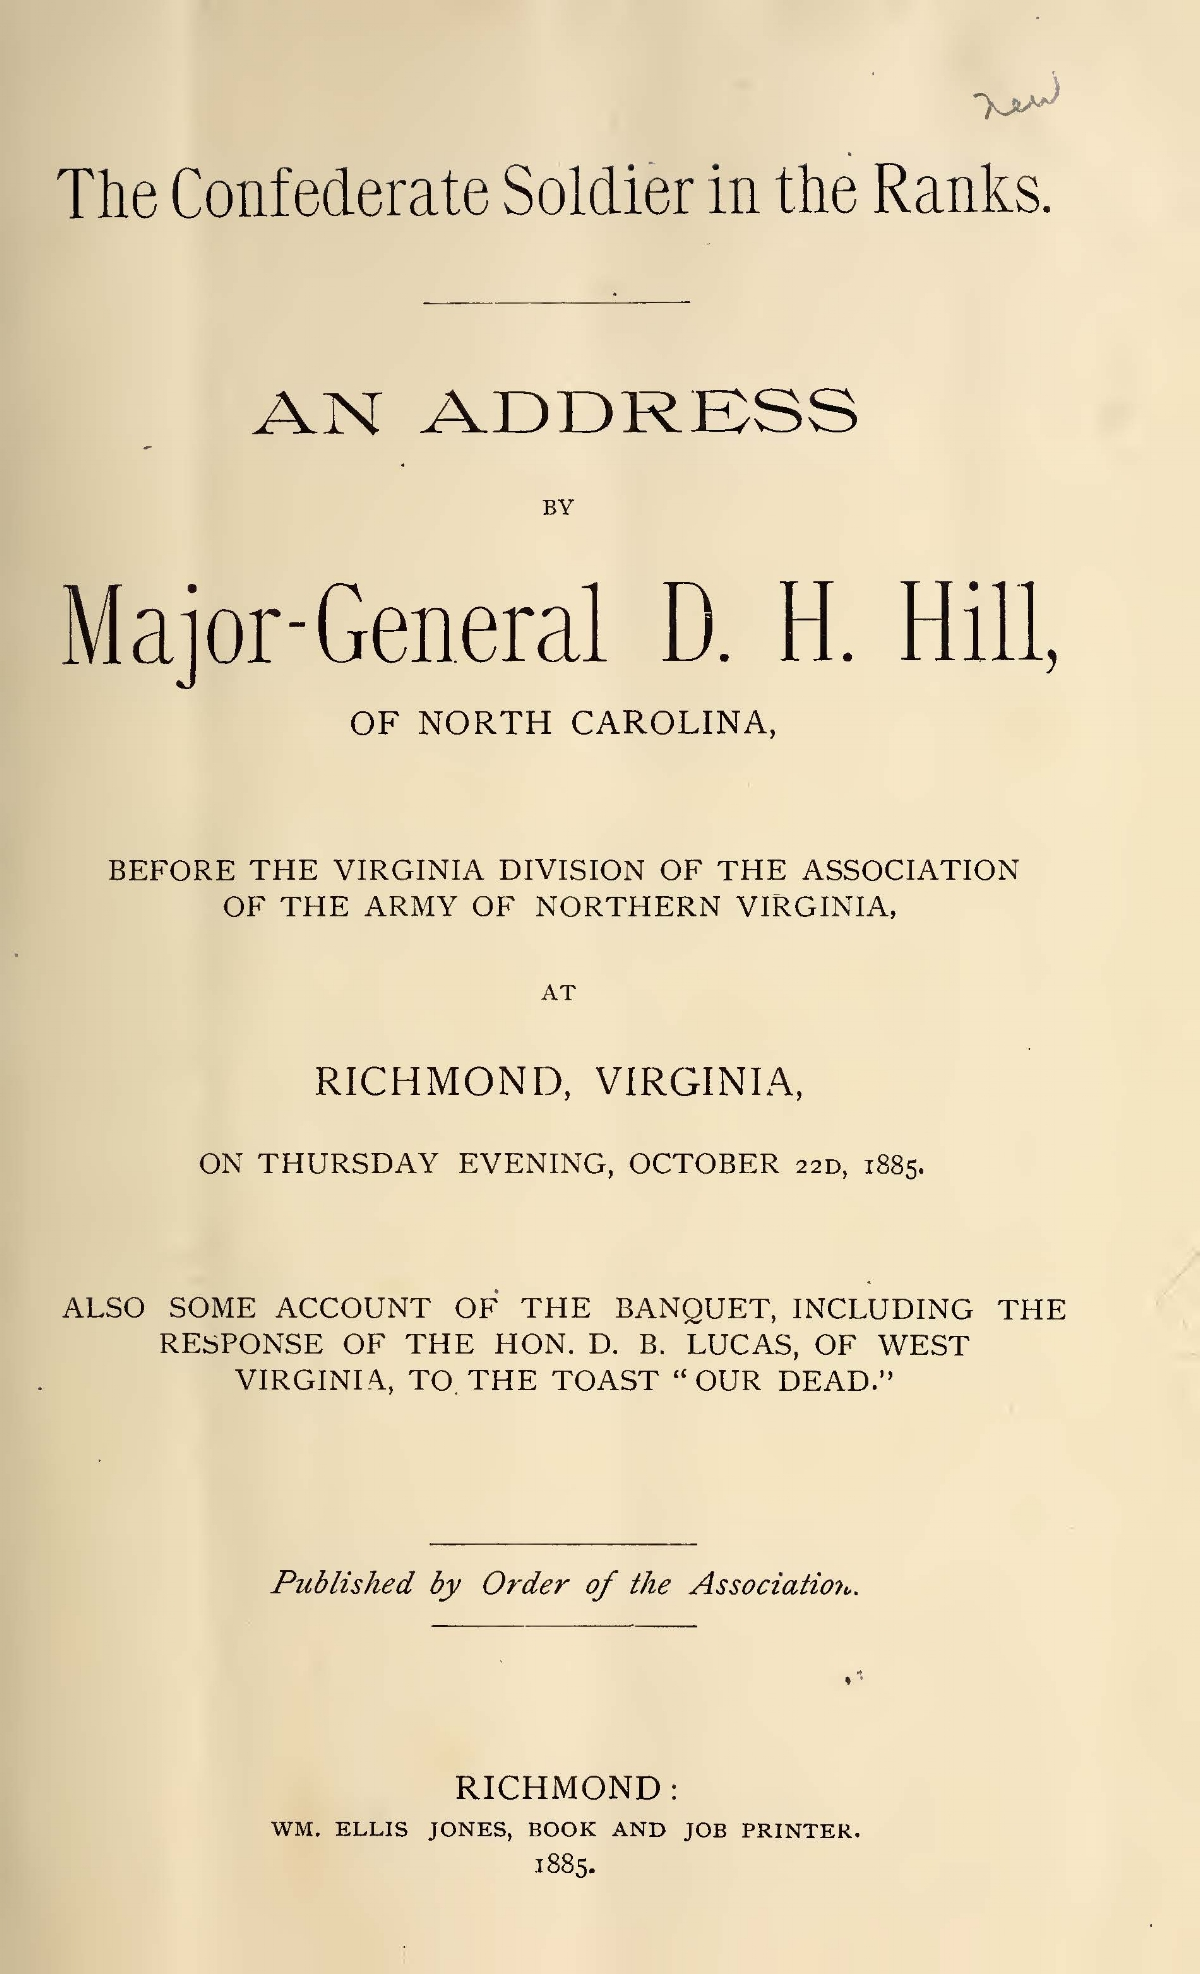 Hill, Daniel Harvey, The Confederate Soldier in the Ranks Title Page.jpg